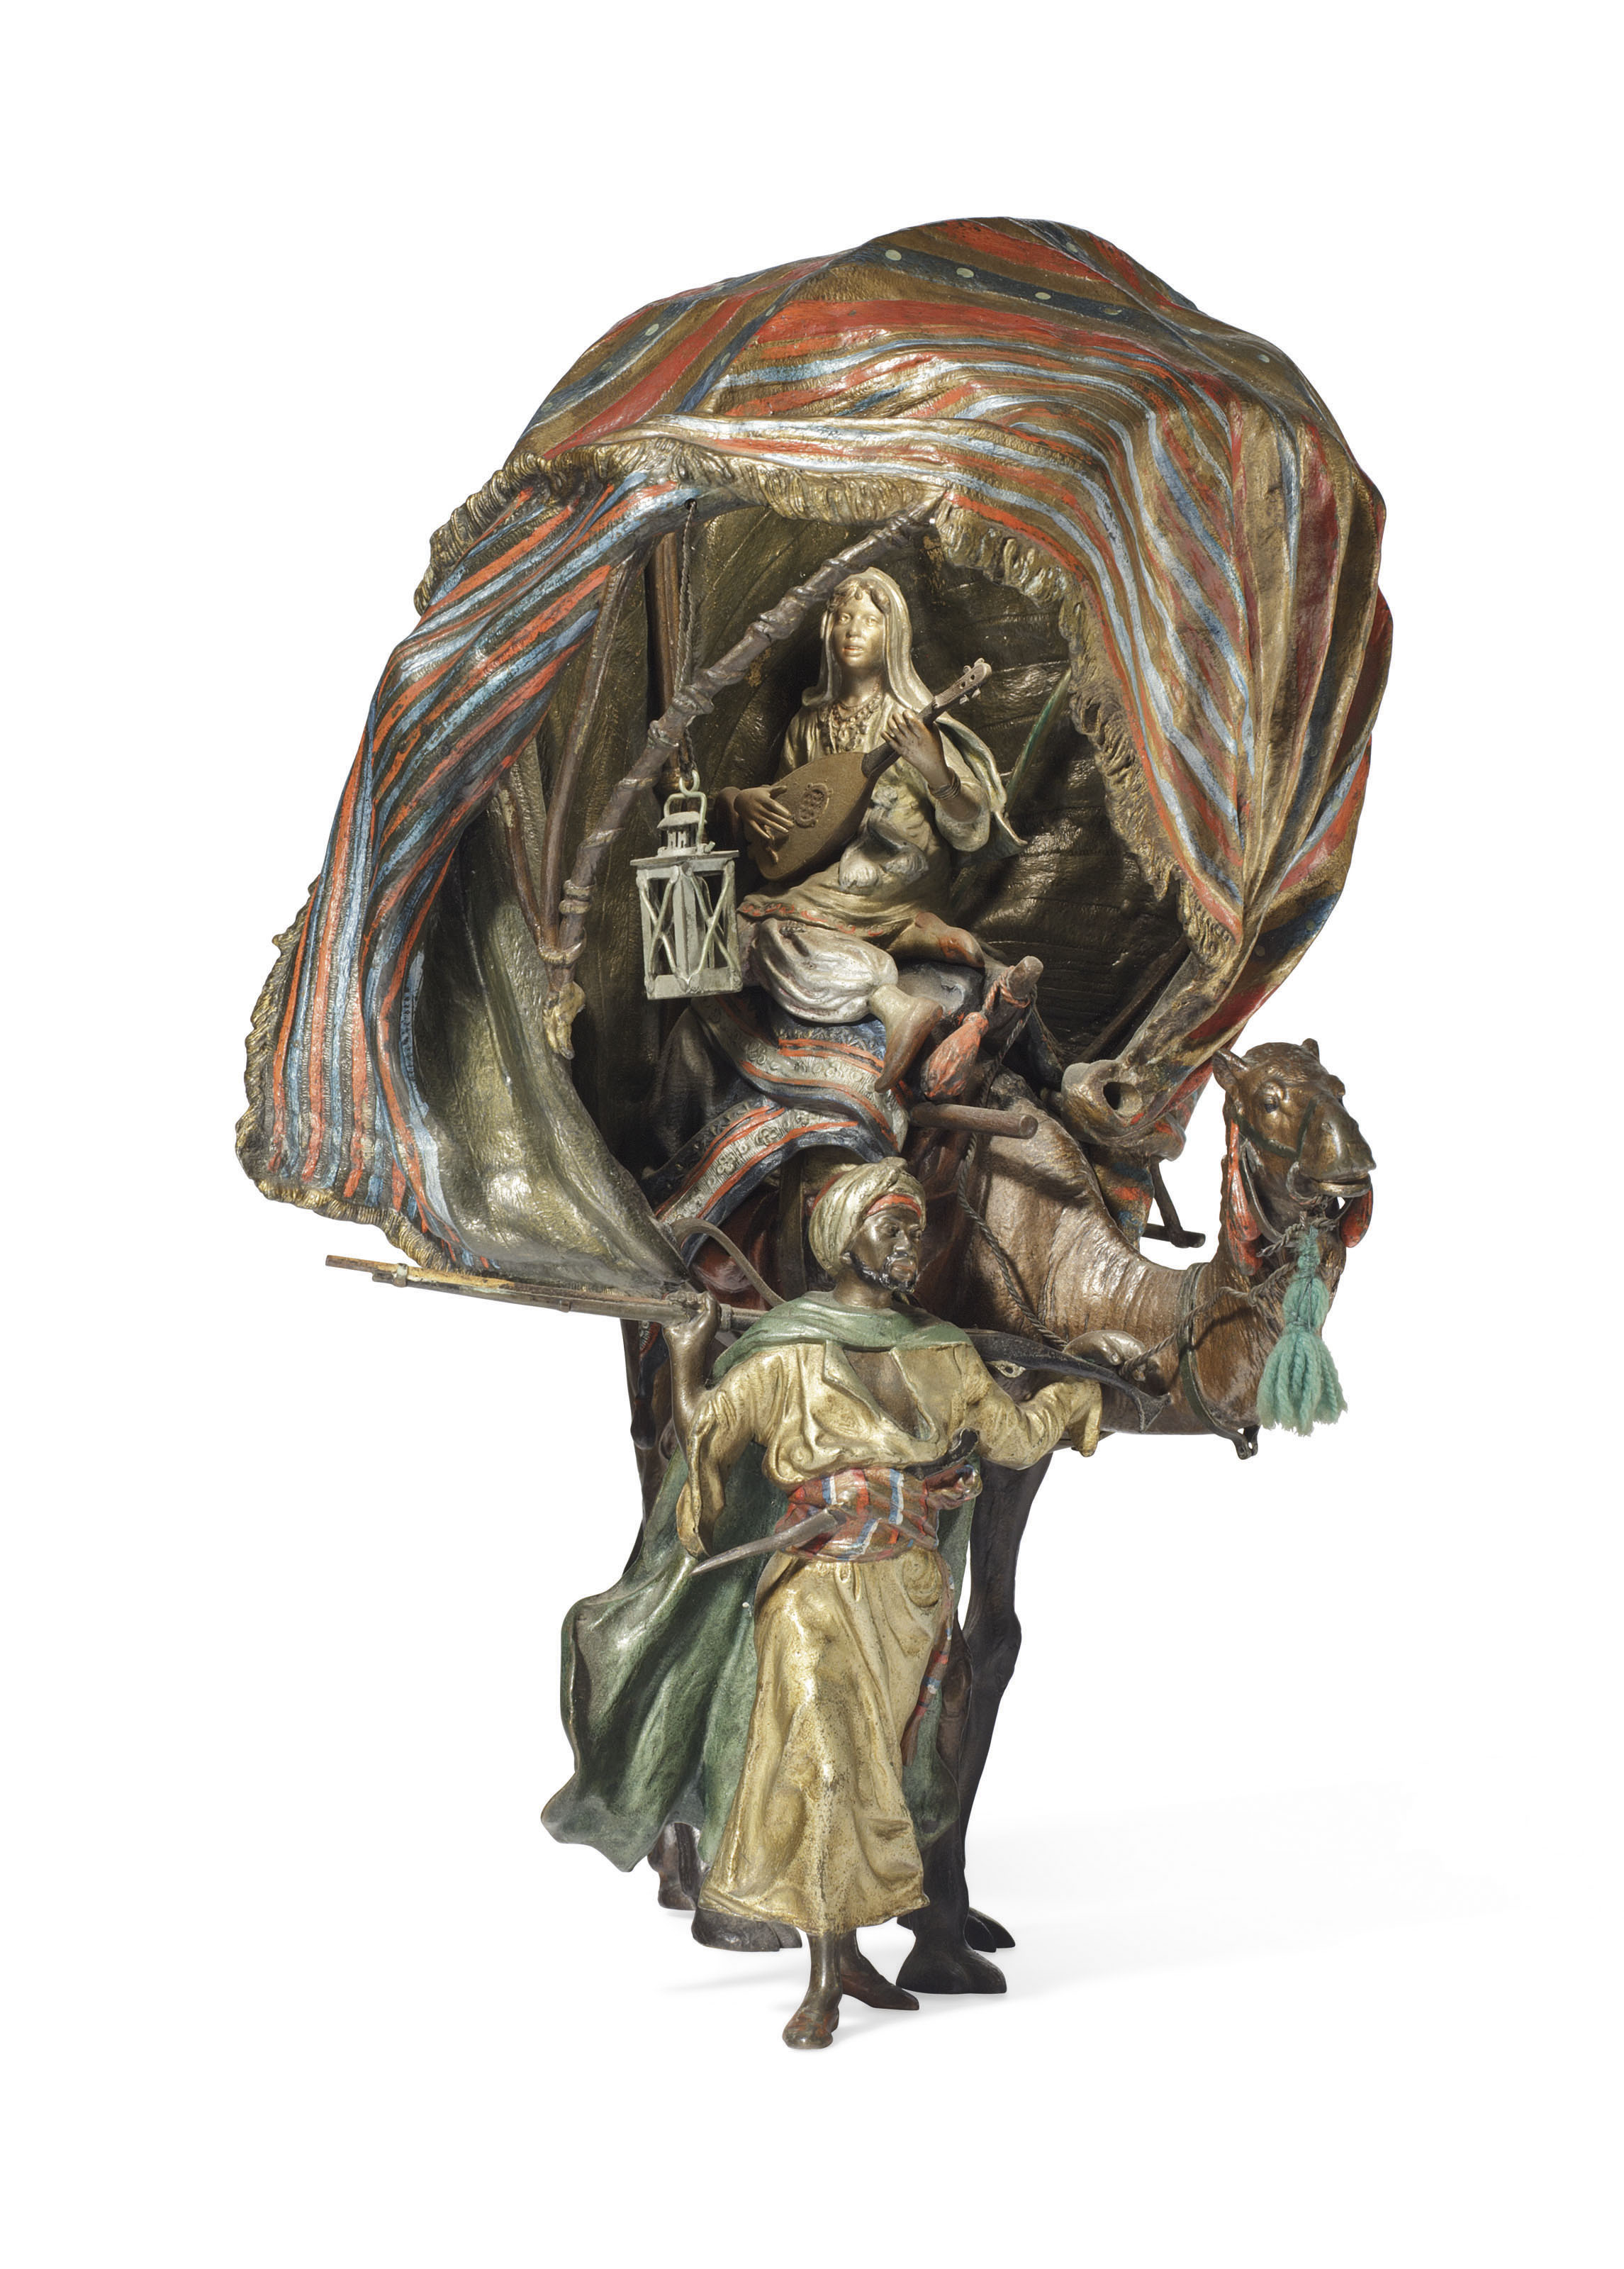 AN AUSTRIAN COLD-PAINTED BRONZE FIGURAL LAMP